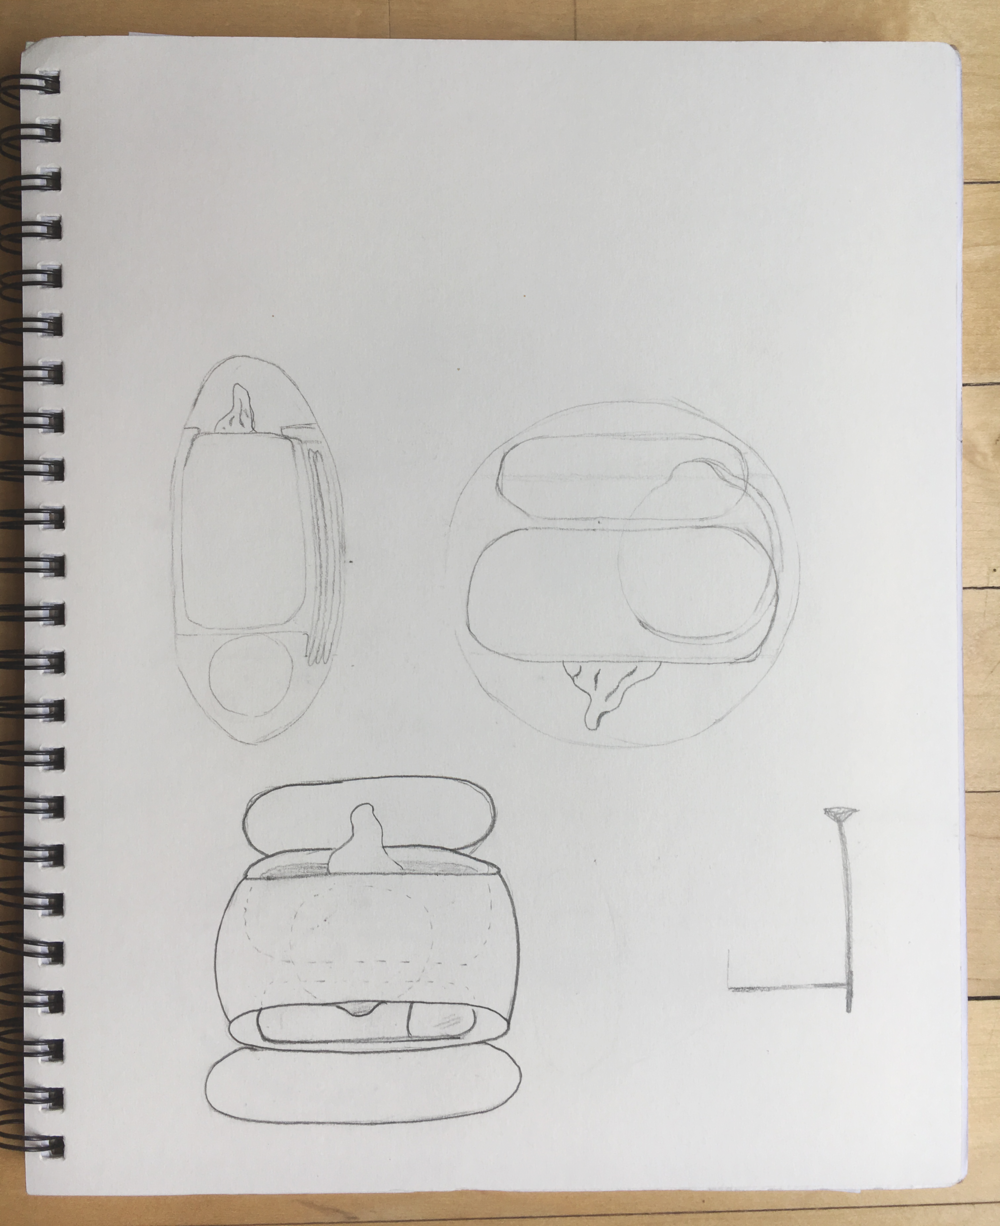 Preliminary Sketch for Convenience Pack